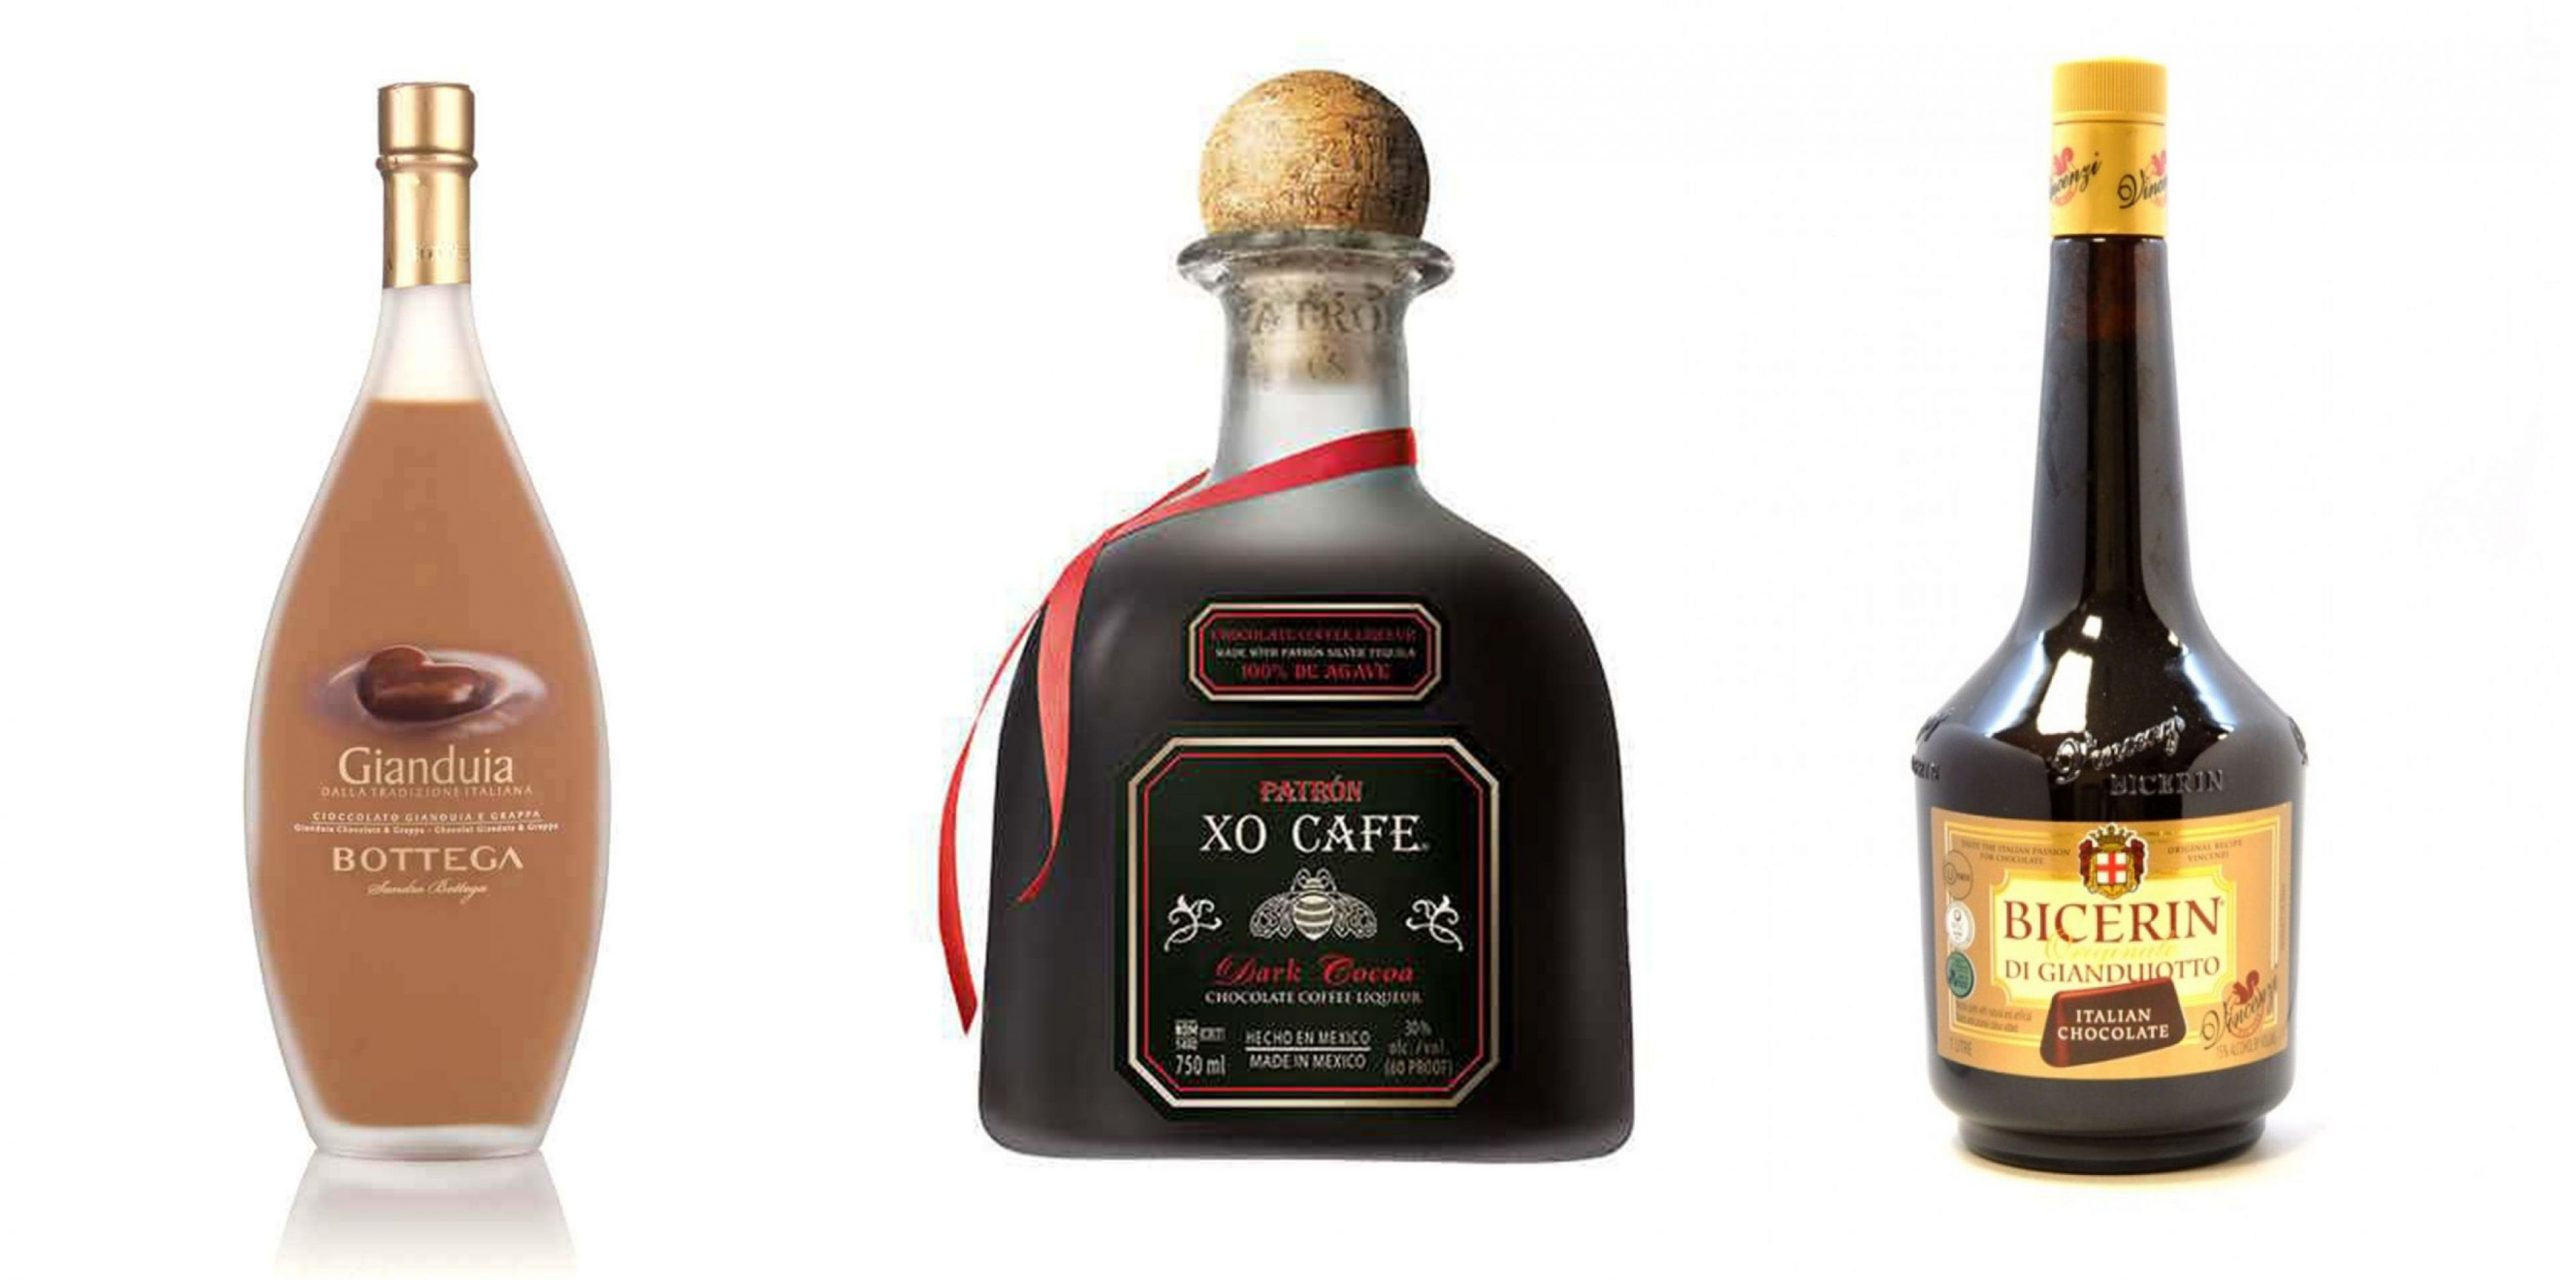 11 Best Chocolate Liqueur Brands 11 - Top Chocolate Liquors to Buy - Recipe Chocolate Liqueur